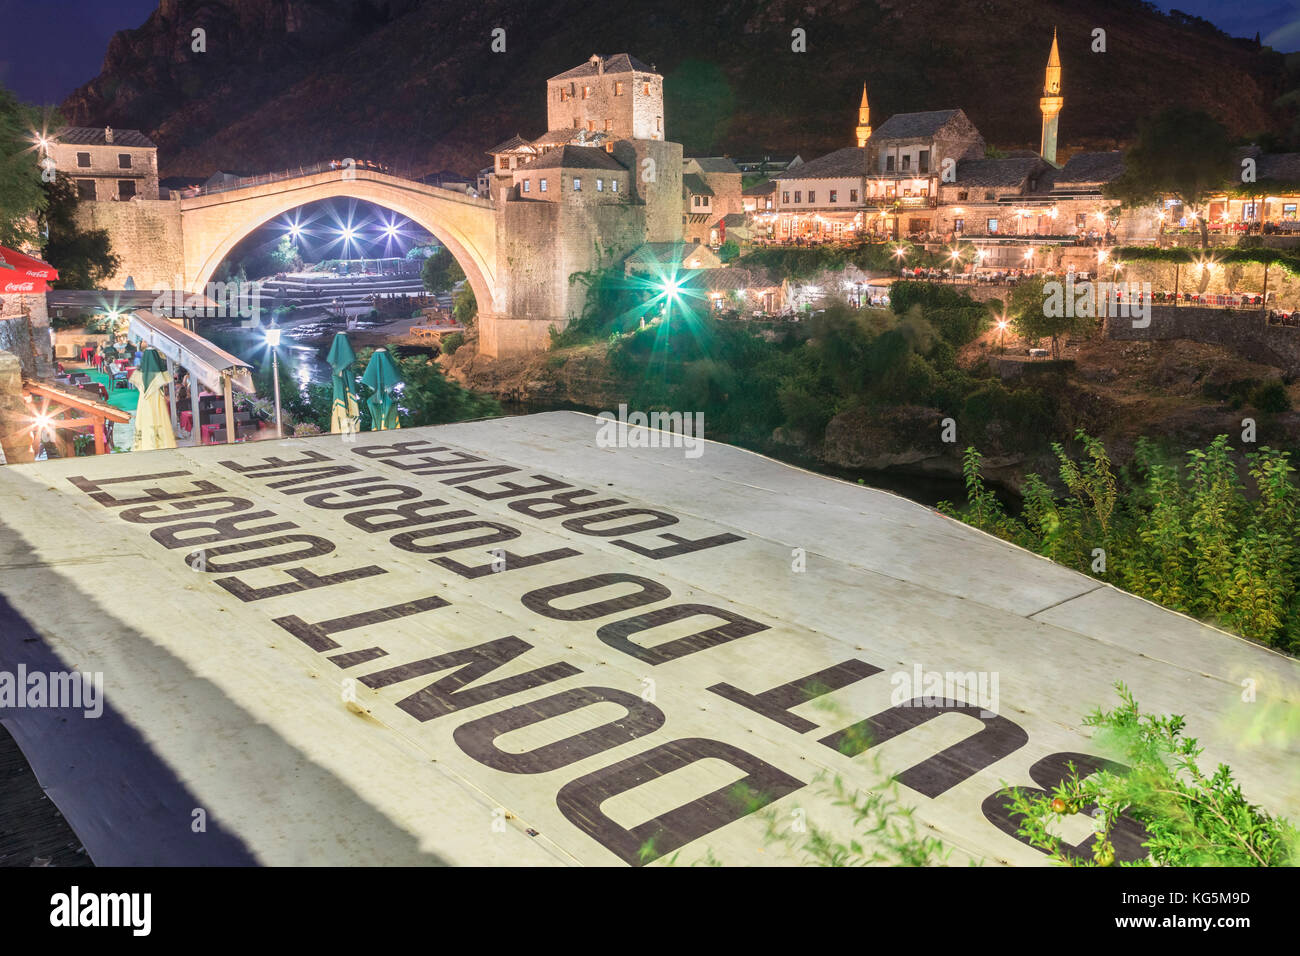 Old Bridge (Stari Most) and and a sentence Don't forget but do forgive, referring to the war in the Balkans, - Stock Image